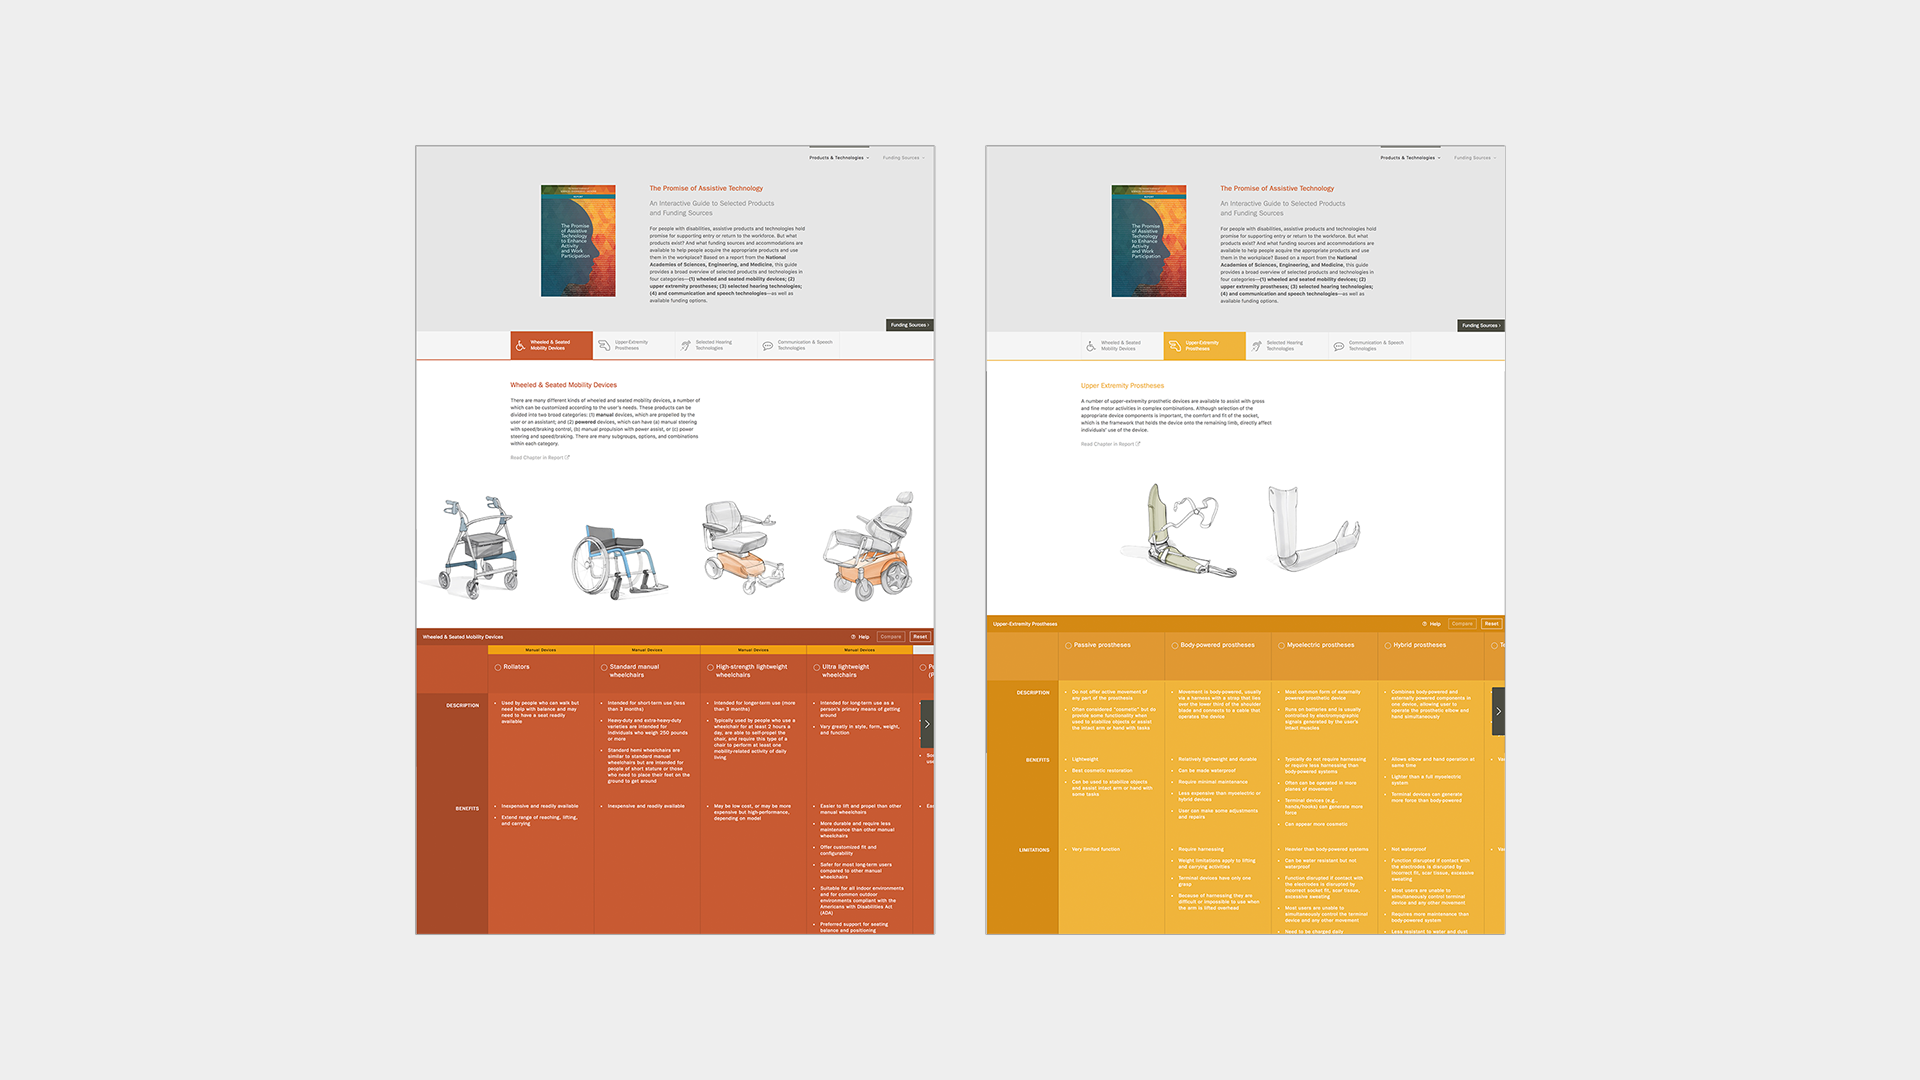 Case Study Assistive Devices Wireframes 2